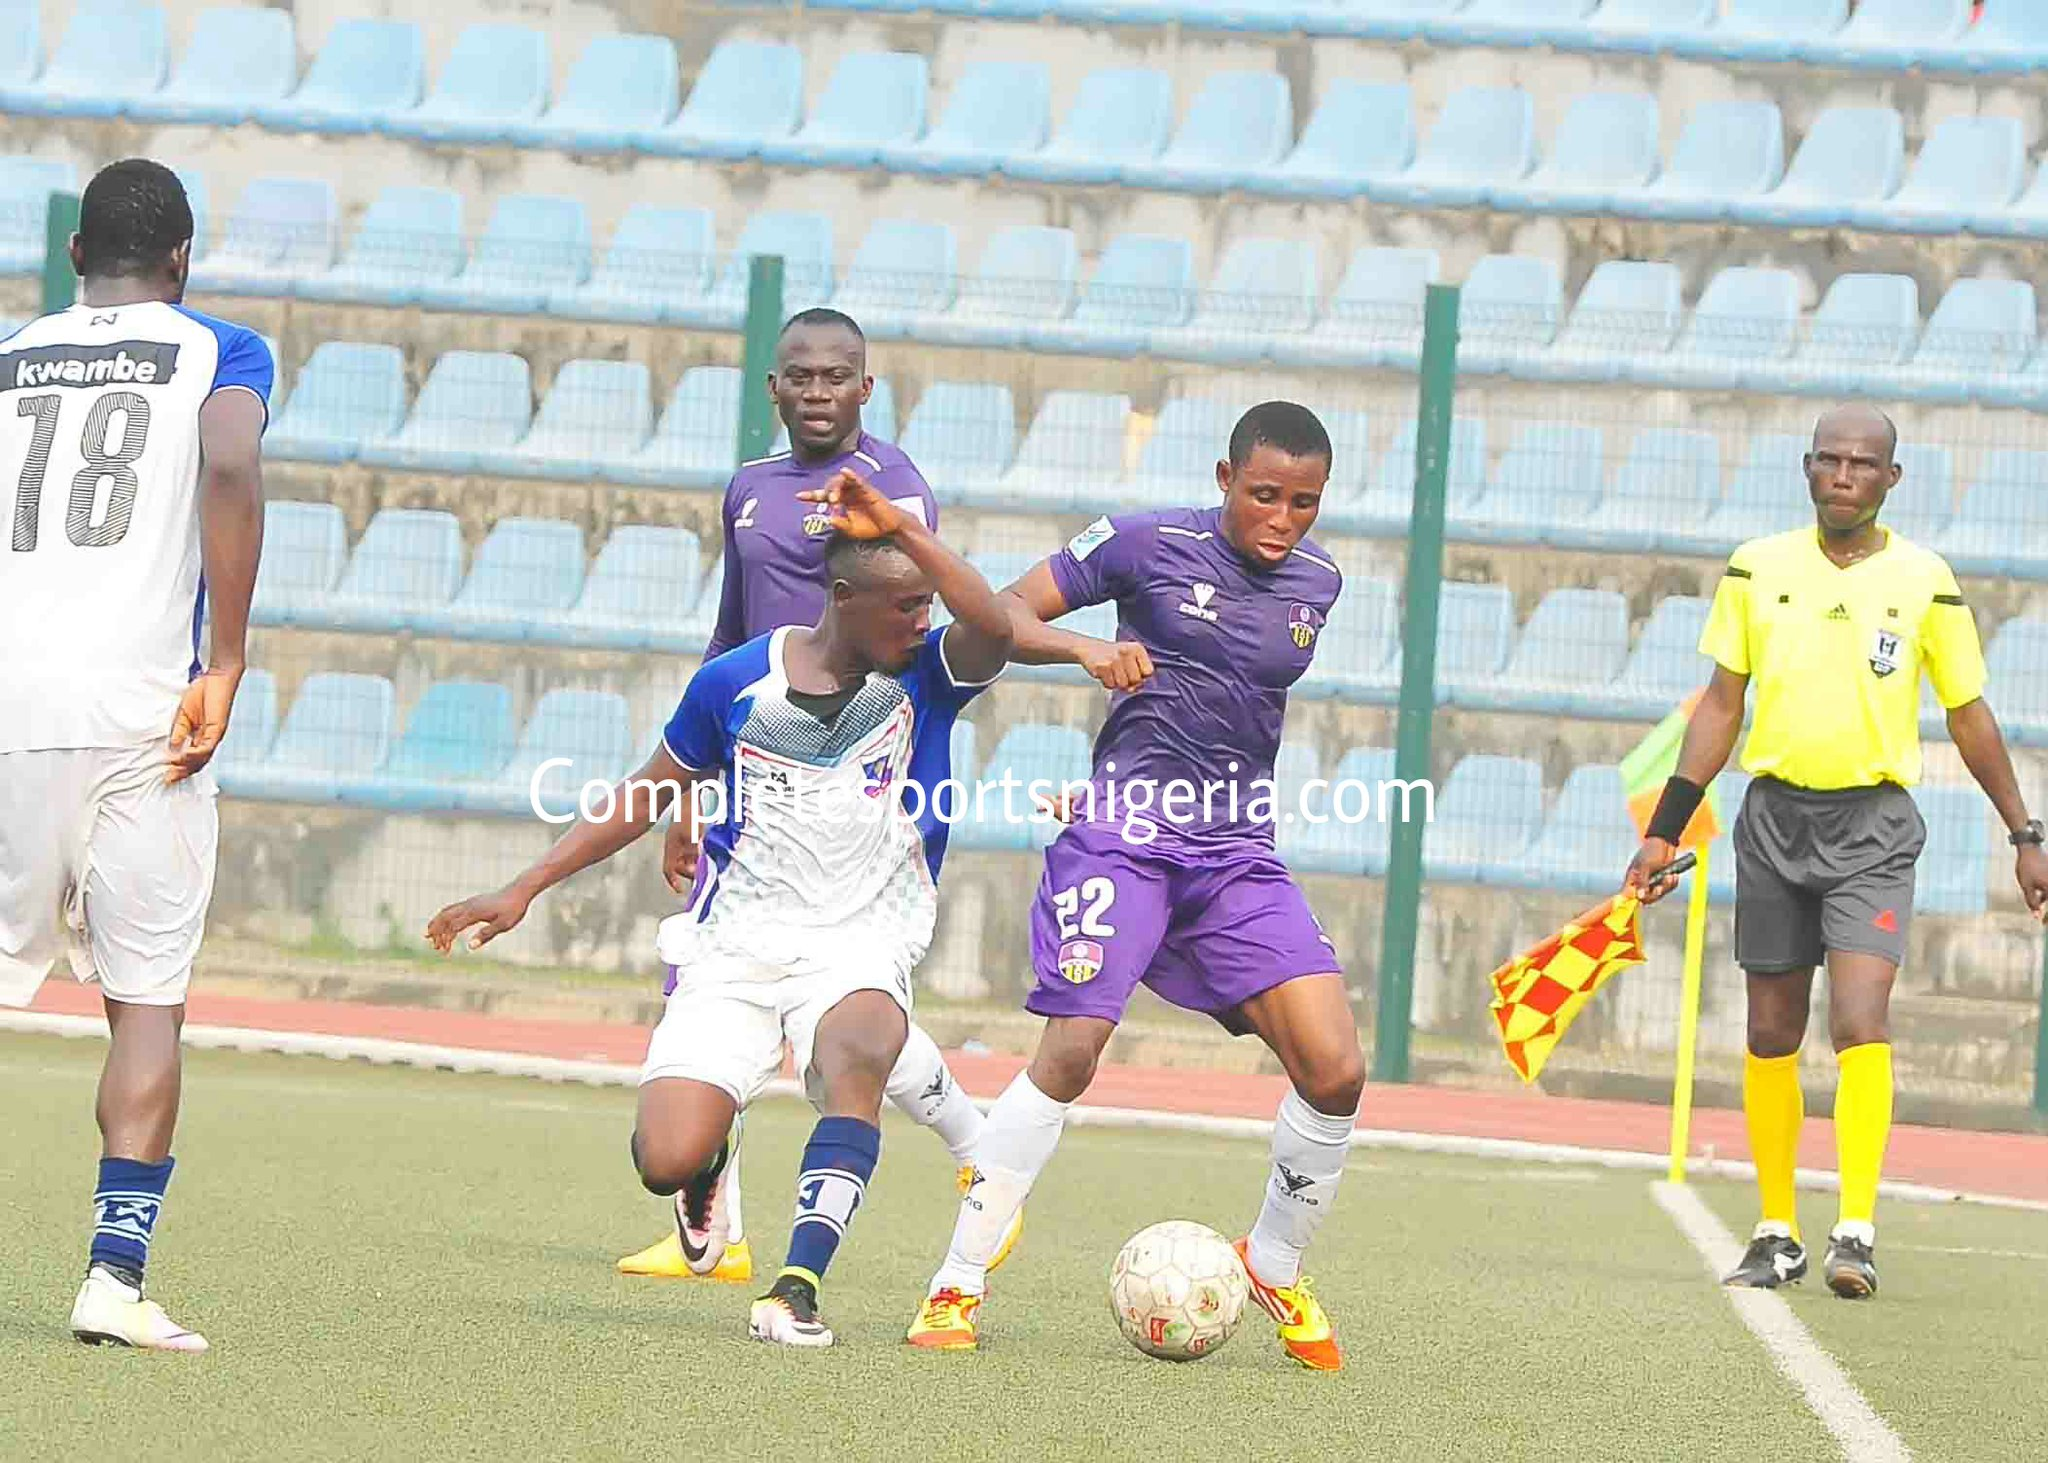 NPFL Matchday-25: Pillars Host MFM, Seek 11th Win; Plateau At Abia Warriors, Look To Extend Lead